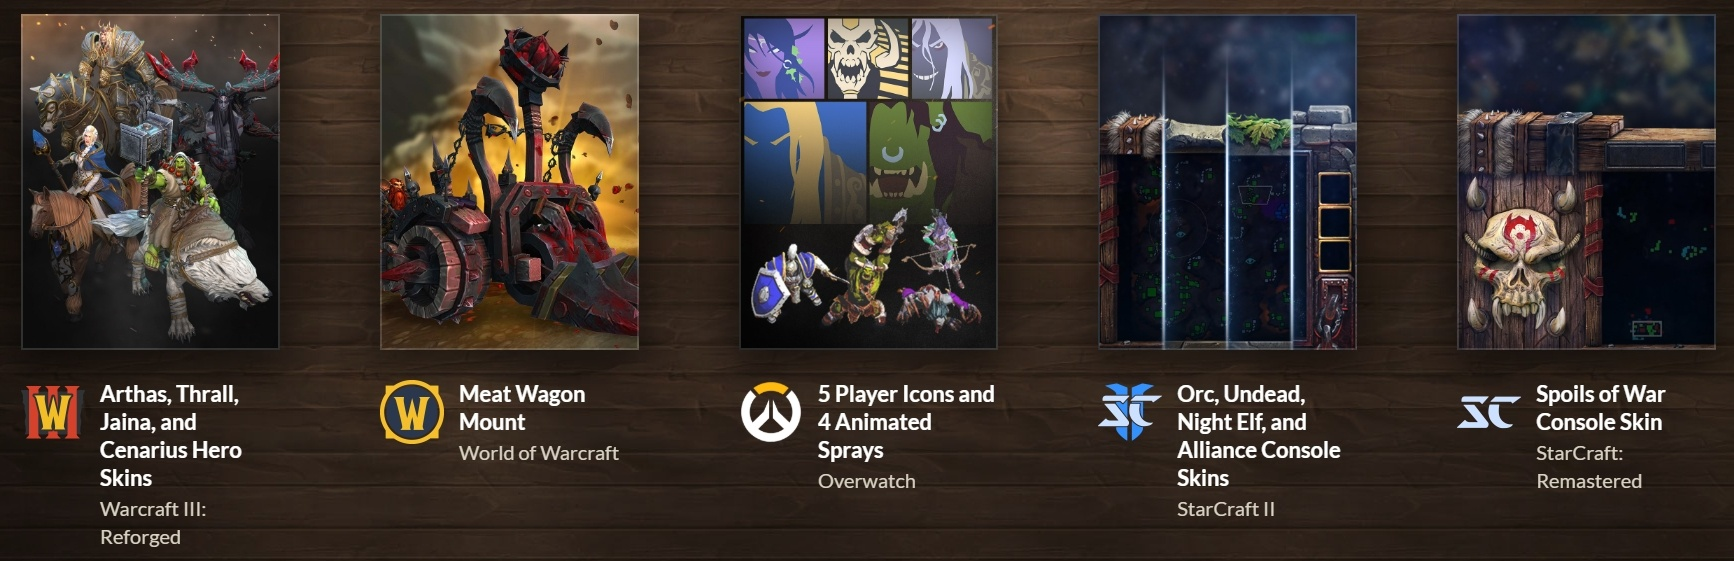 Warcraft 3 Reforged Overview Release Date Models Campaign